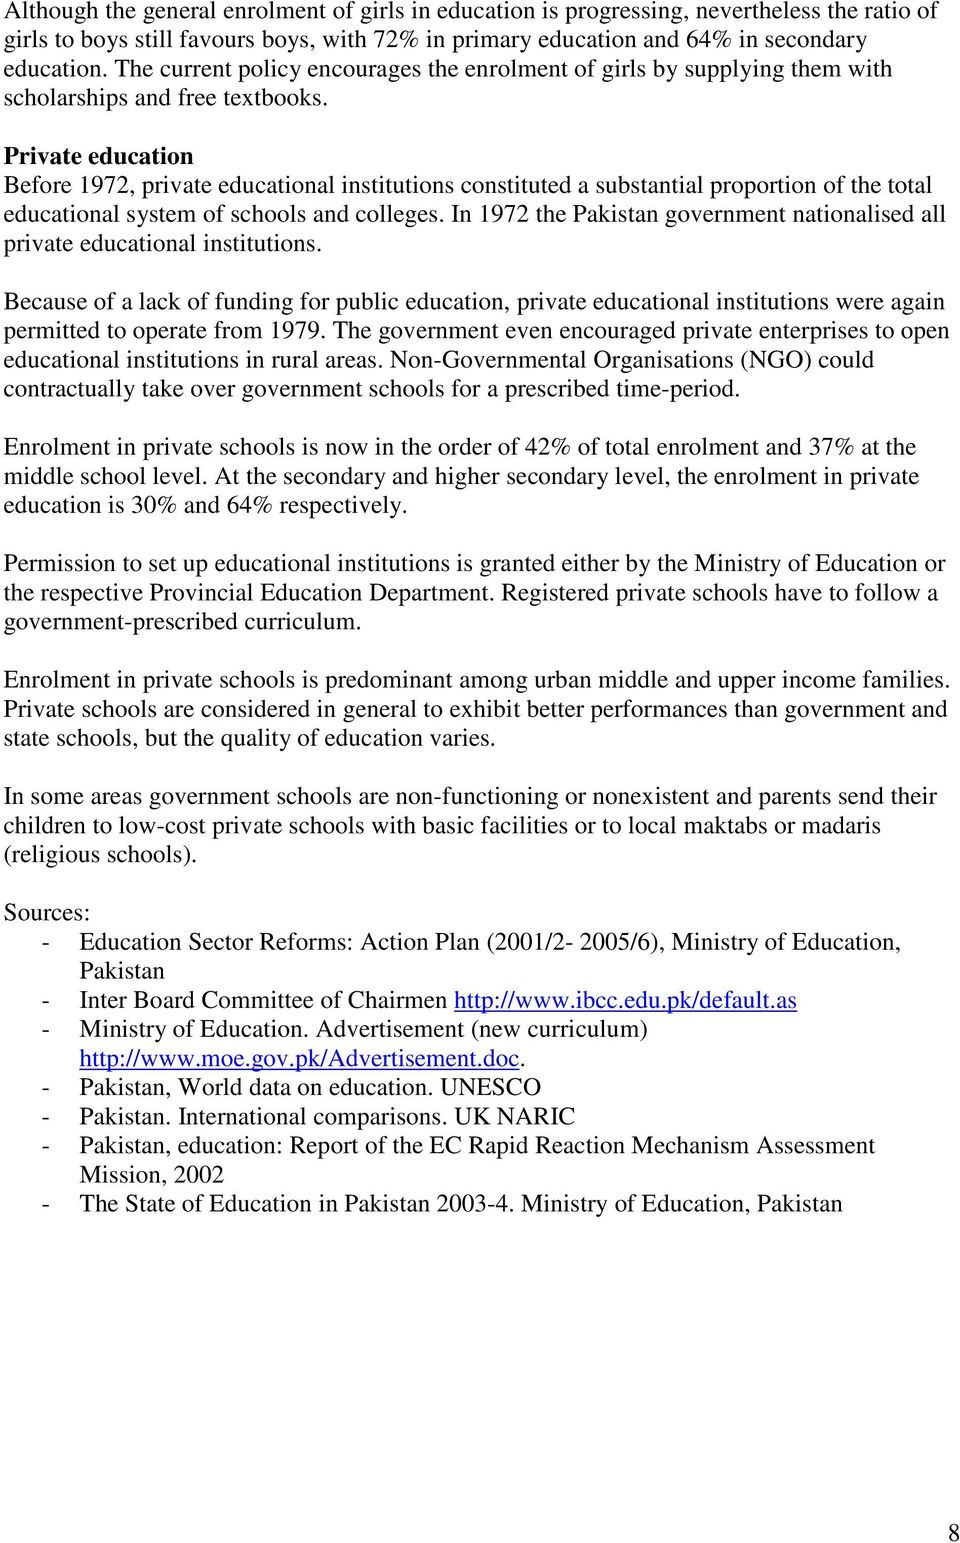 Private education Before 1972, private educational institutions constituted a substantial proportion of the total educational system of schools and colleges.